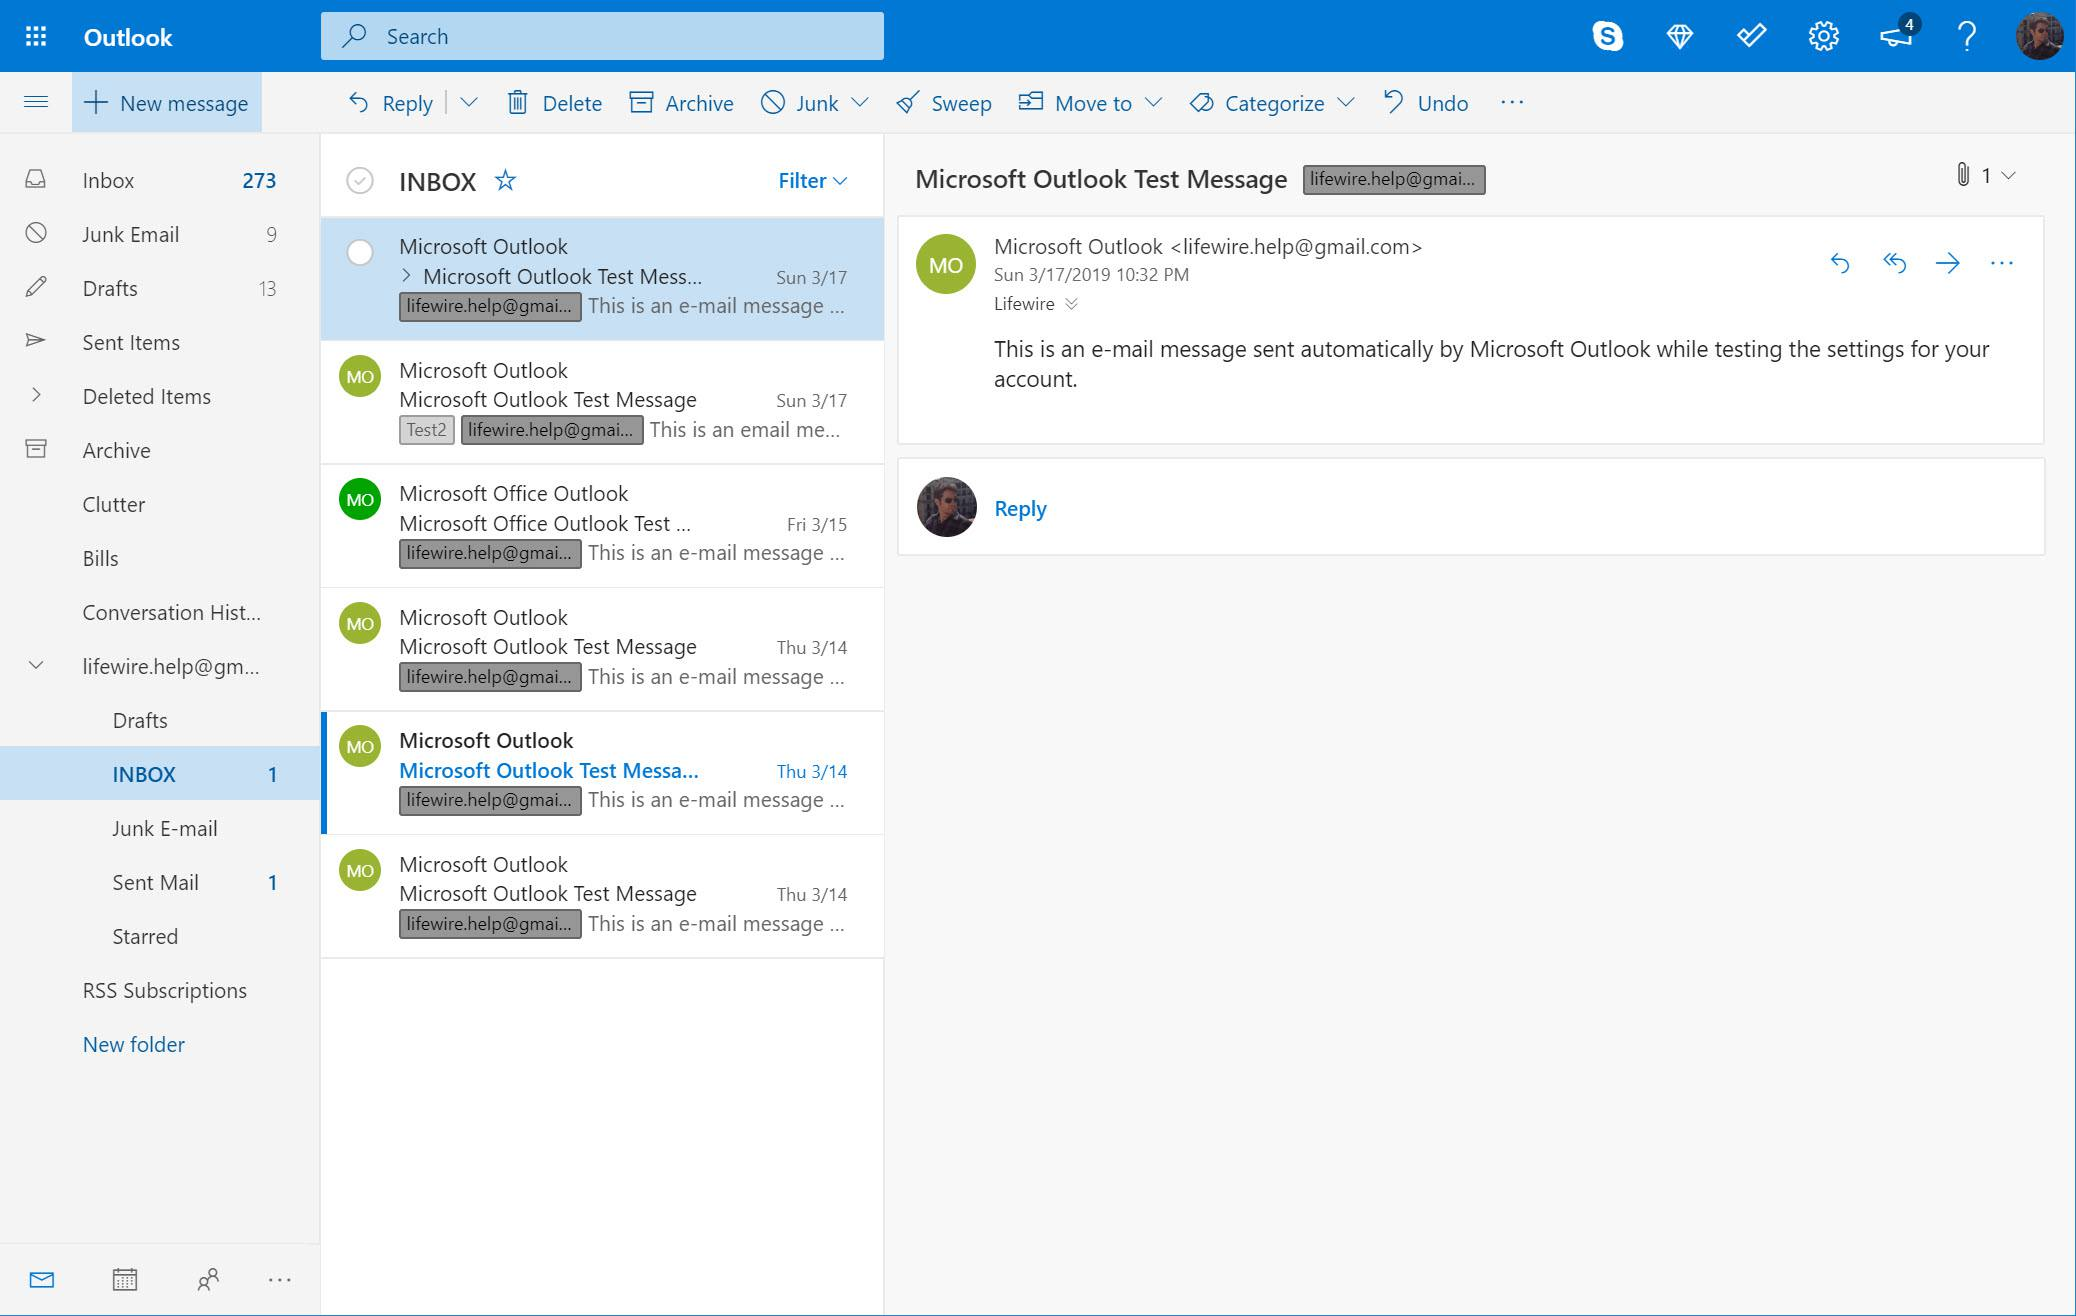 Outlook.com with New message selected